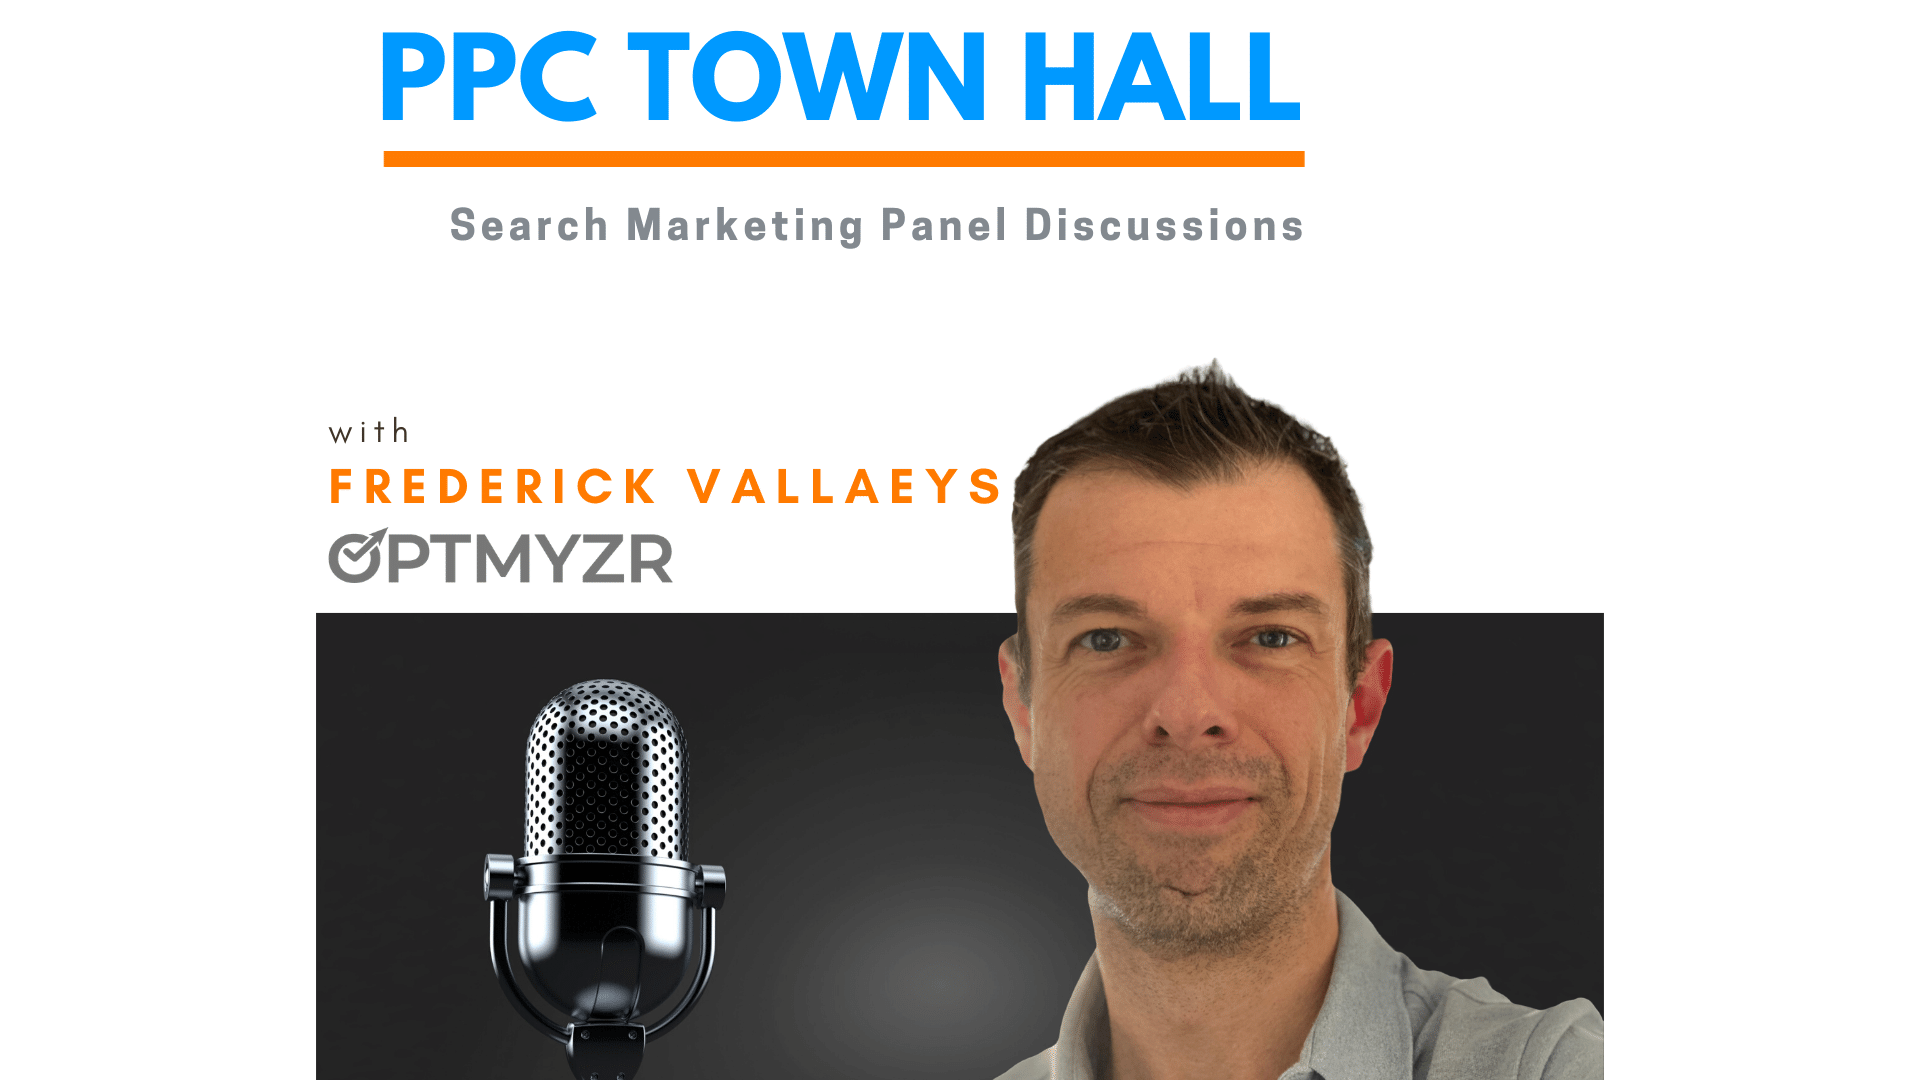 PPC Town Hall - Featured Image